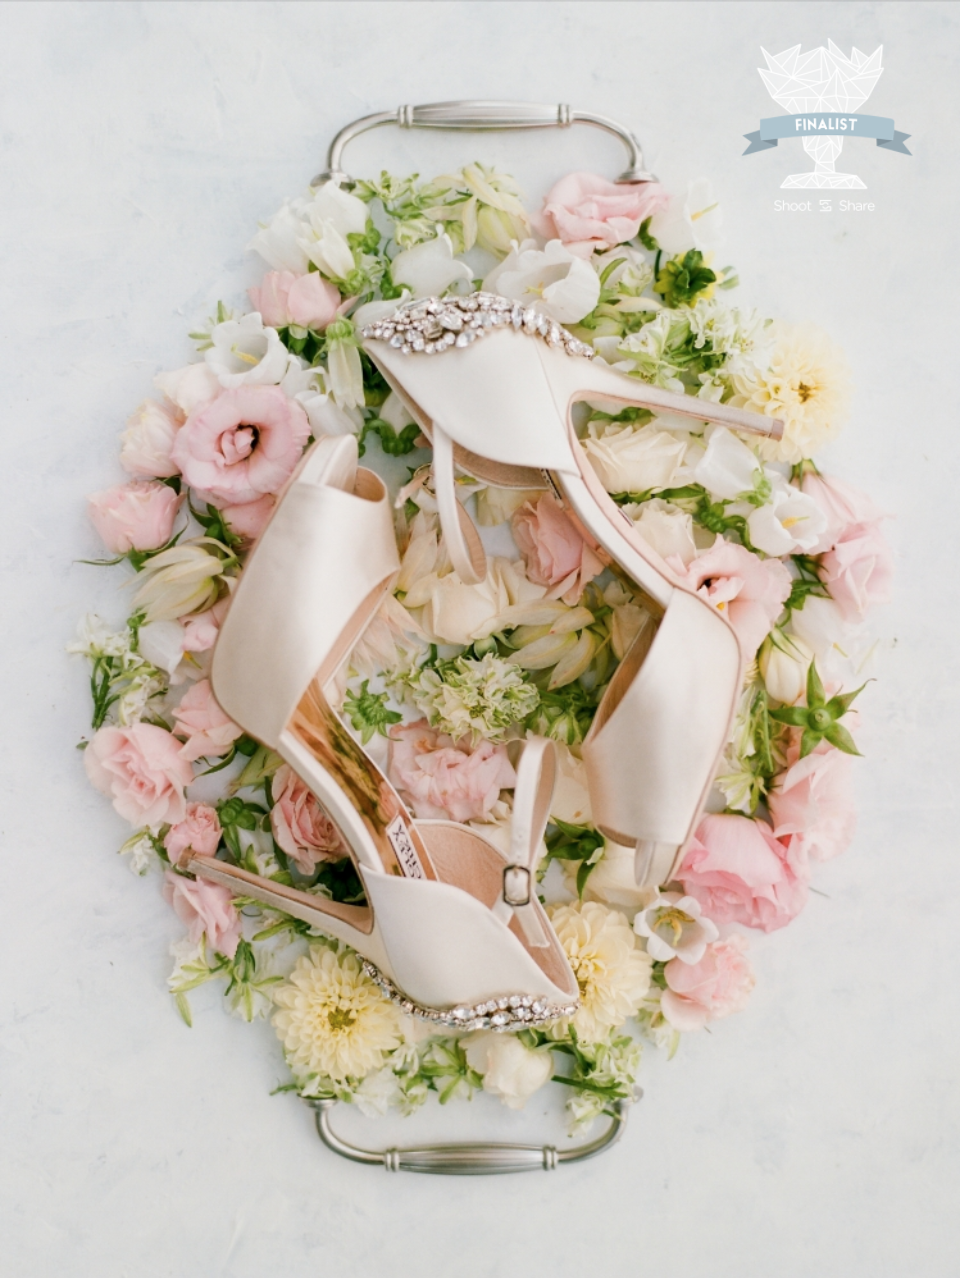 AWARD: FINALIST  (Out of 16.7k entries) |  Design: Jennifer Laura Design, Styling Board: Mibellarosa, Styling: Dana Fernandez Photography, Florals: Bows and Arrows